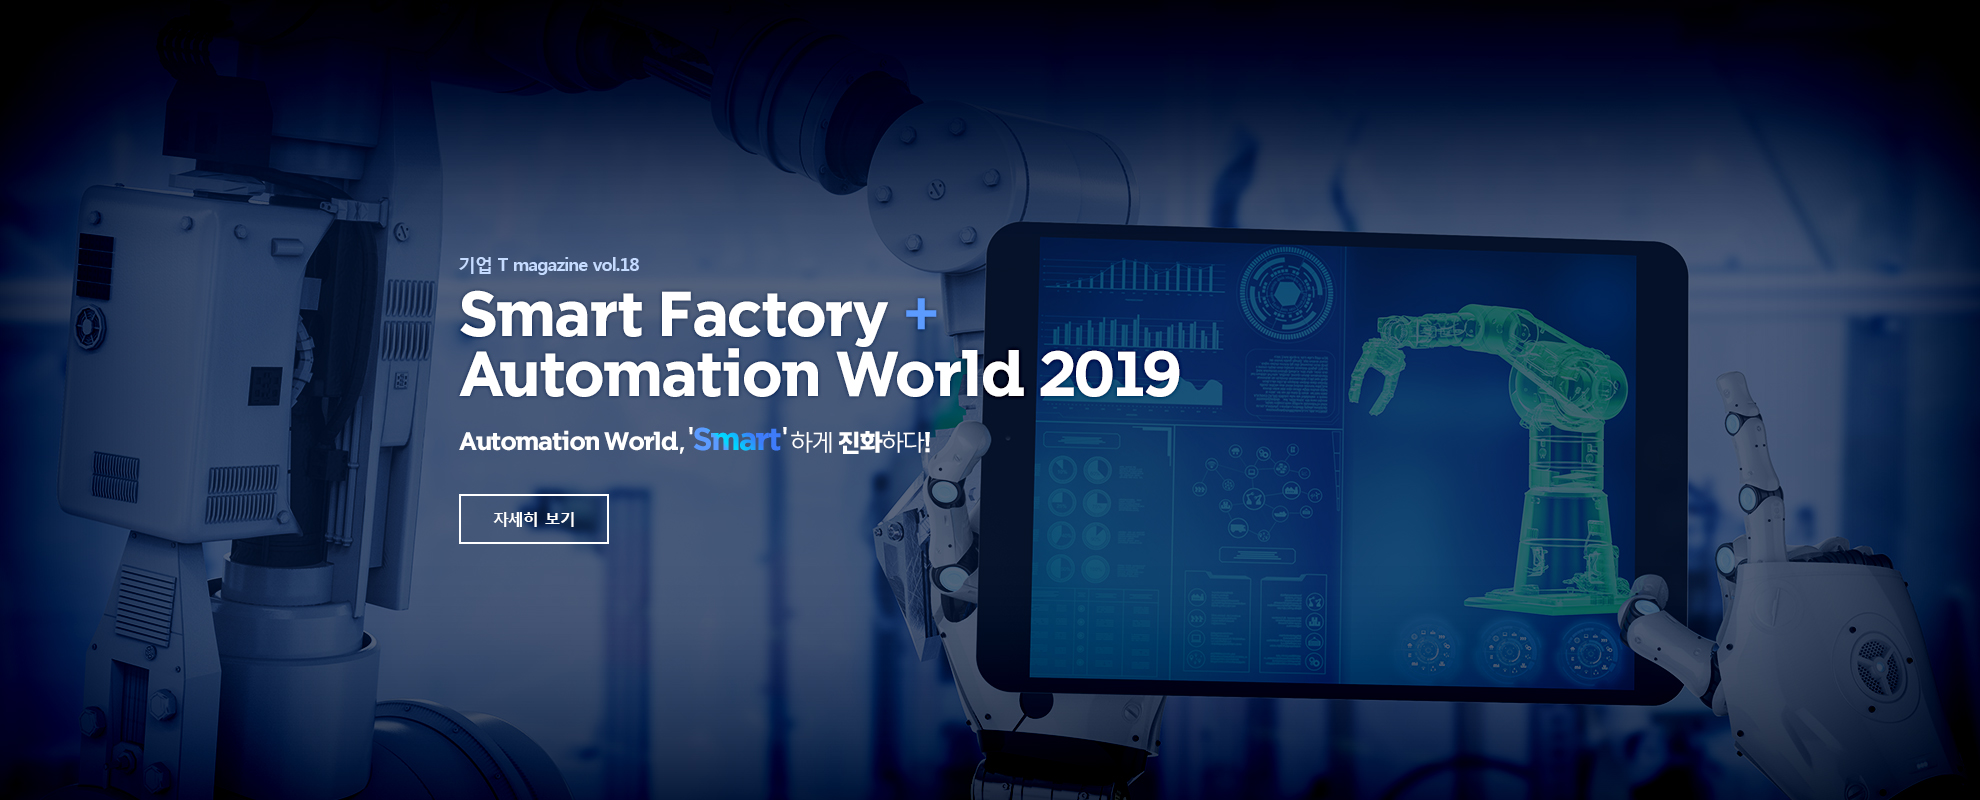 Smart Factory+Automation World 2019 Automation World, 'Smart'하게 진화하다!